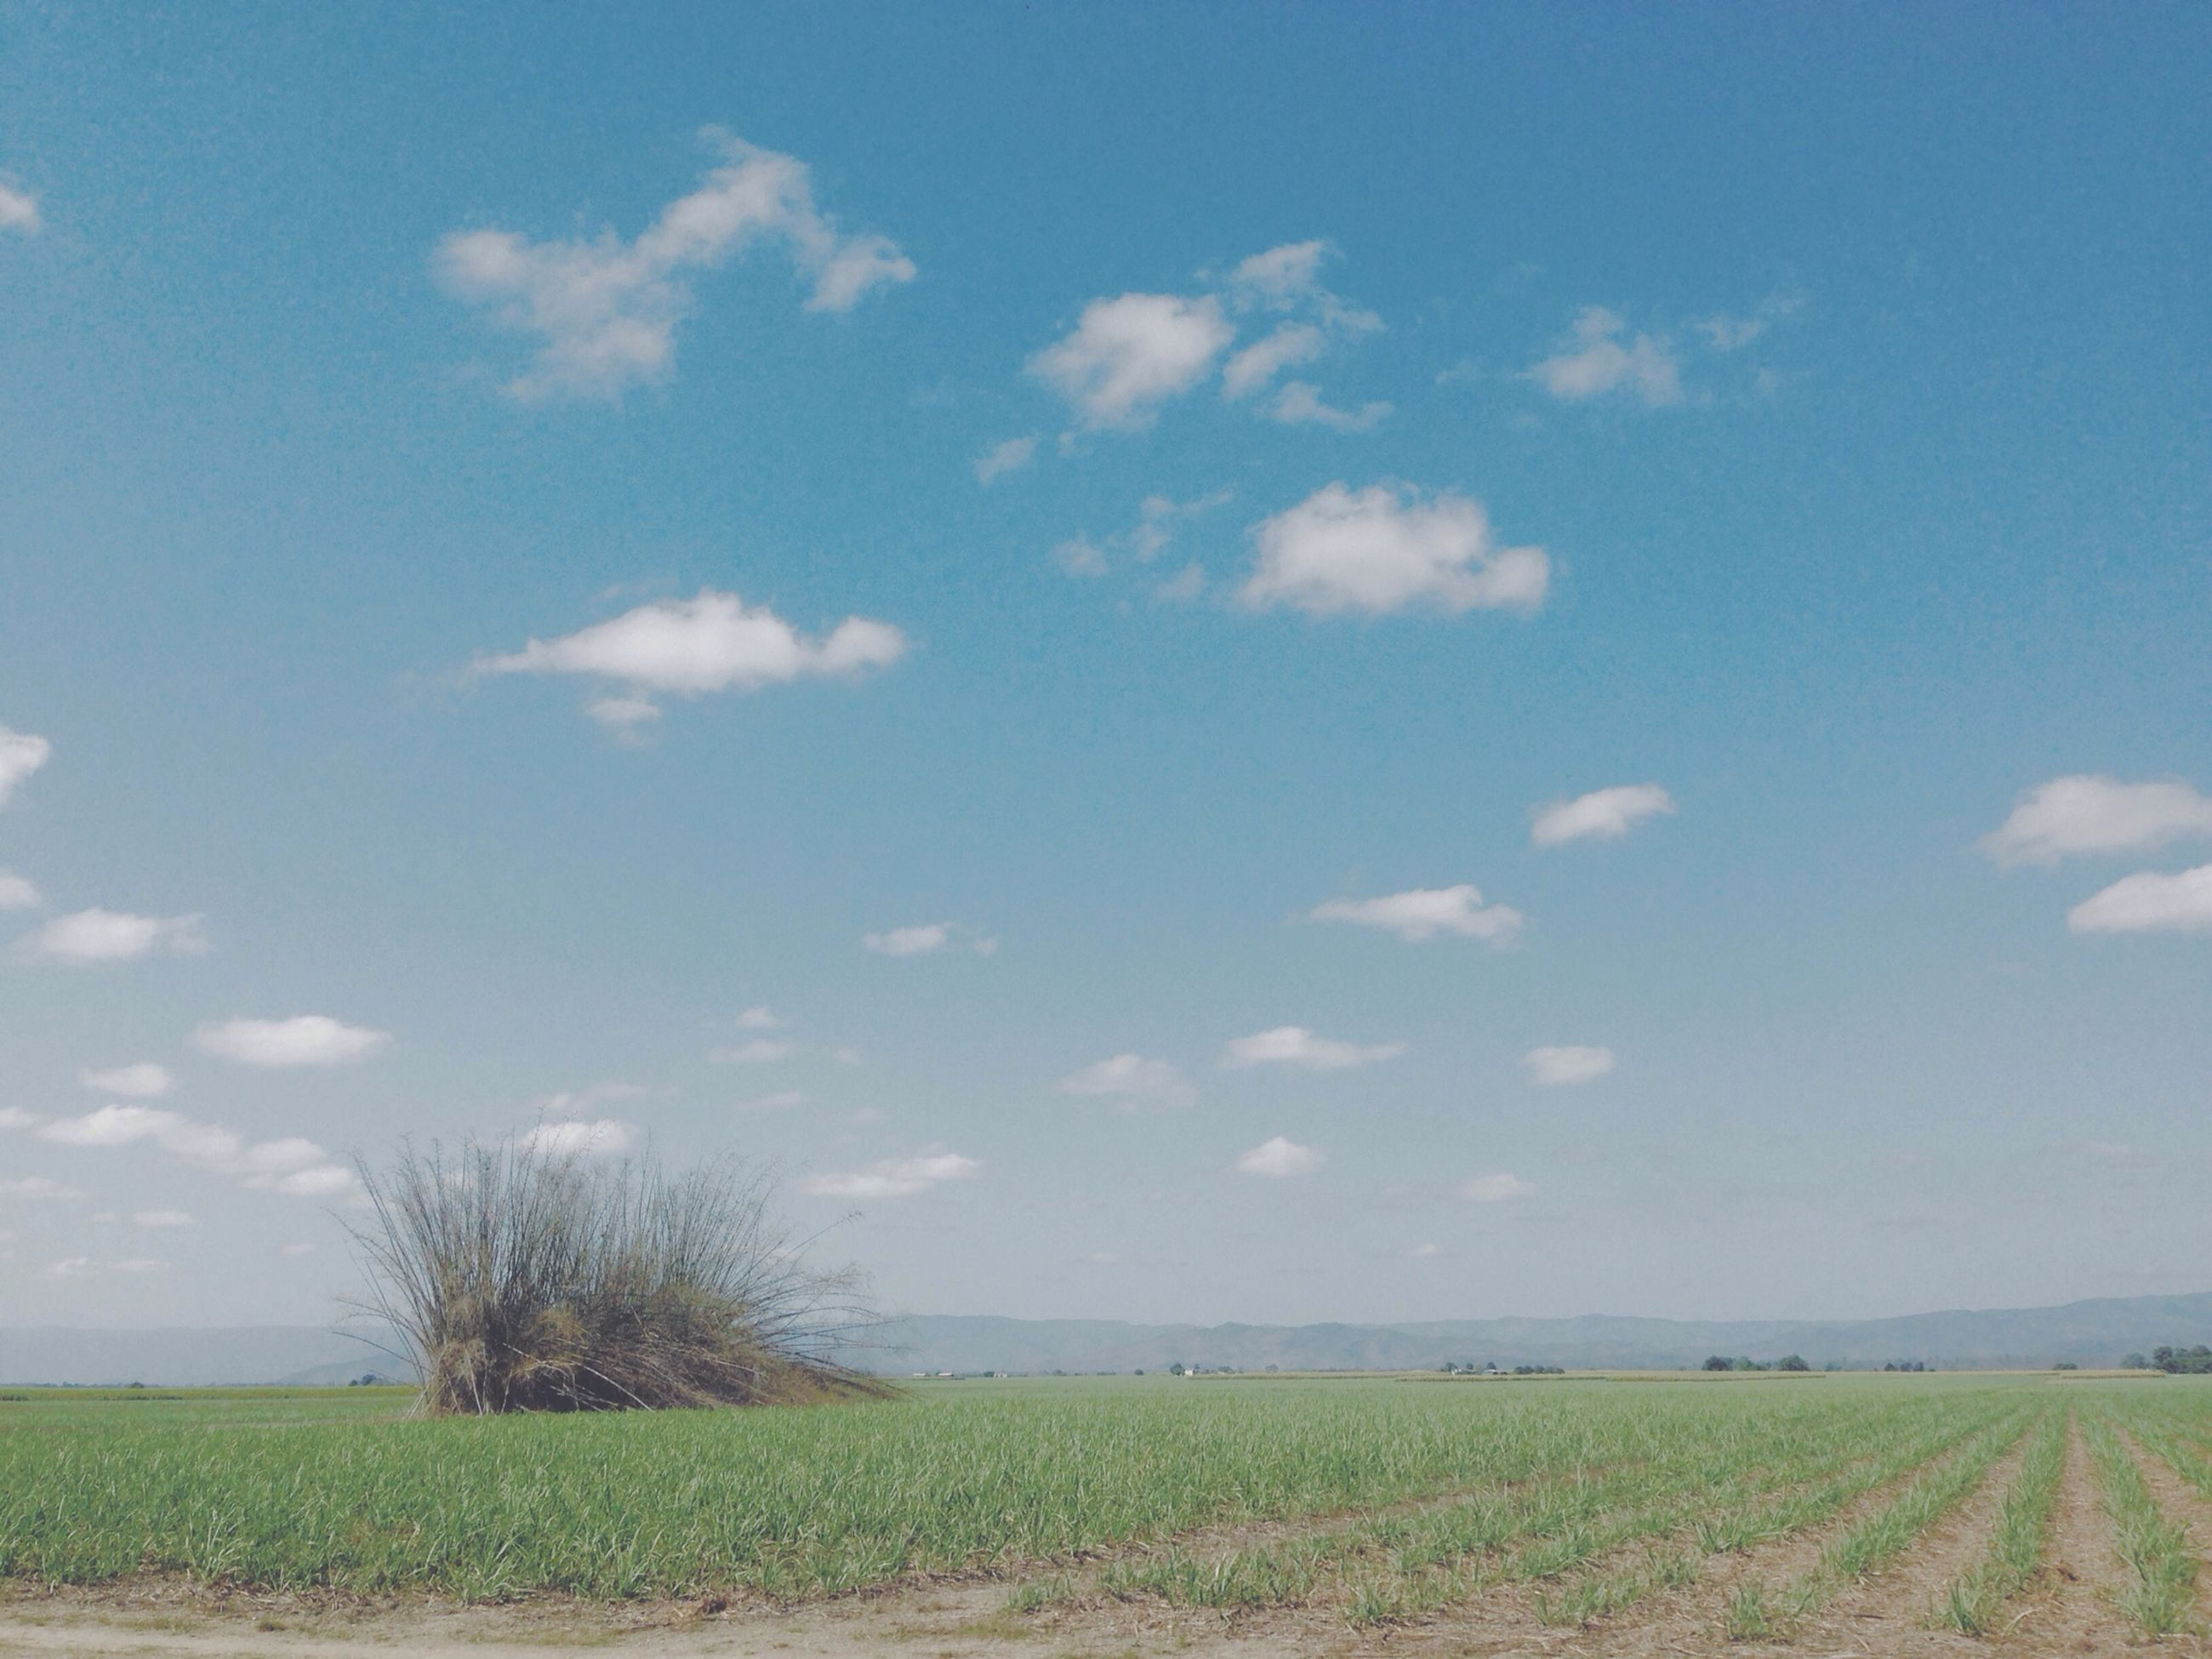 tranquil scene, tranquility, sky, field, landscape, grass, scenics, beauty in nature, nature, rural scene, growth, agriculture, blue, horizon over land, cloud, cloud - sky, plant, idyllic, water, remote